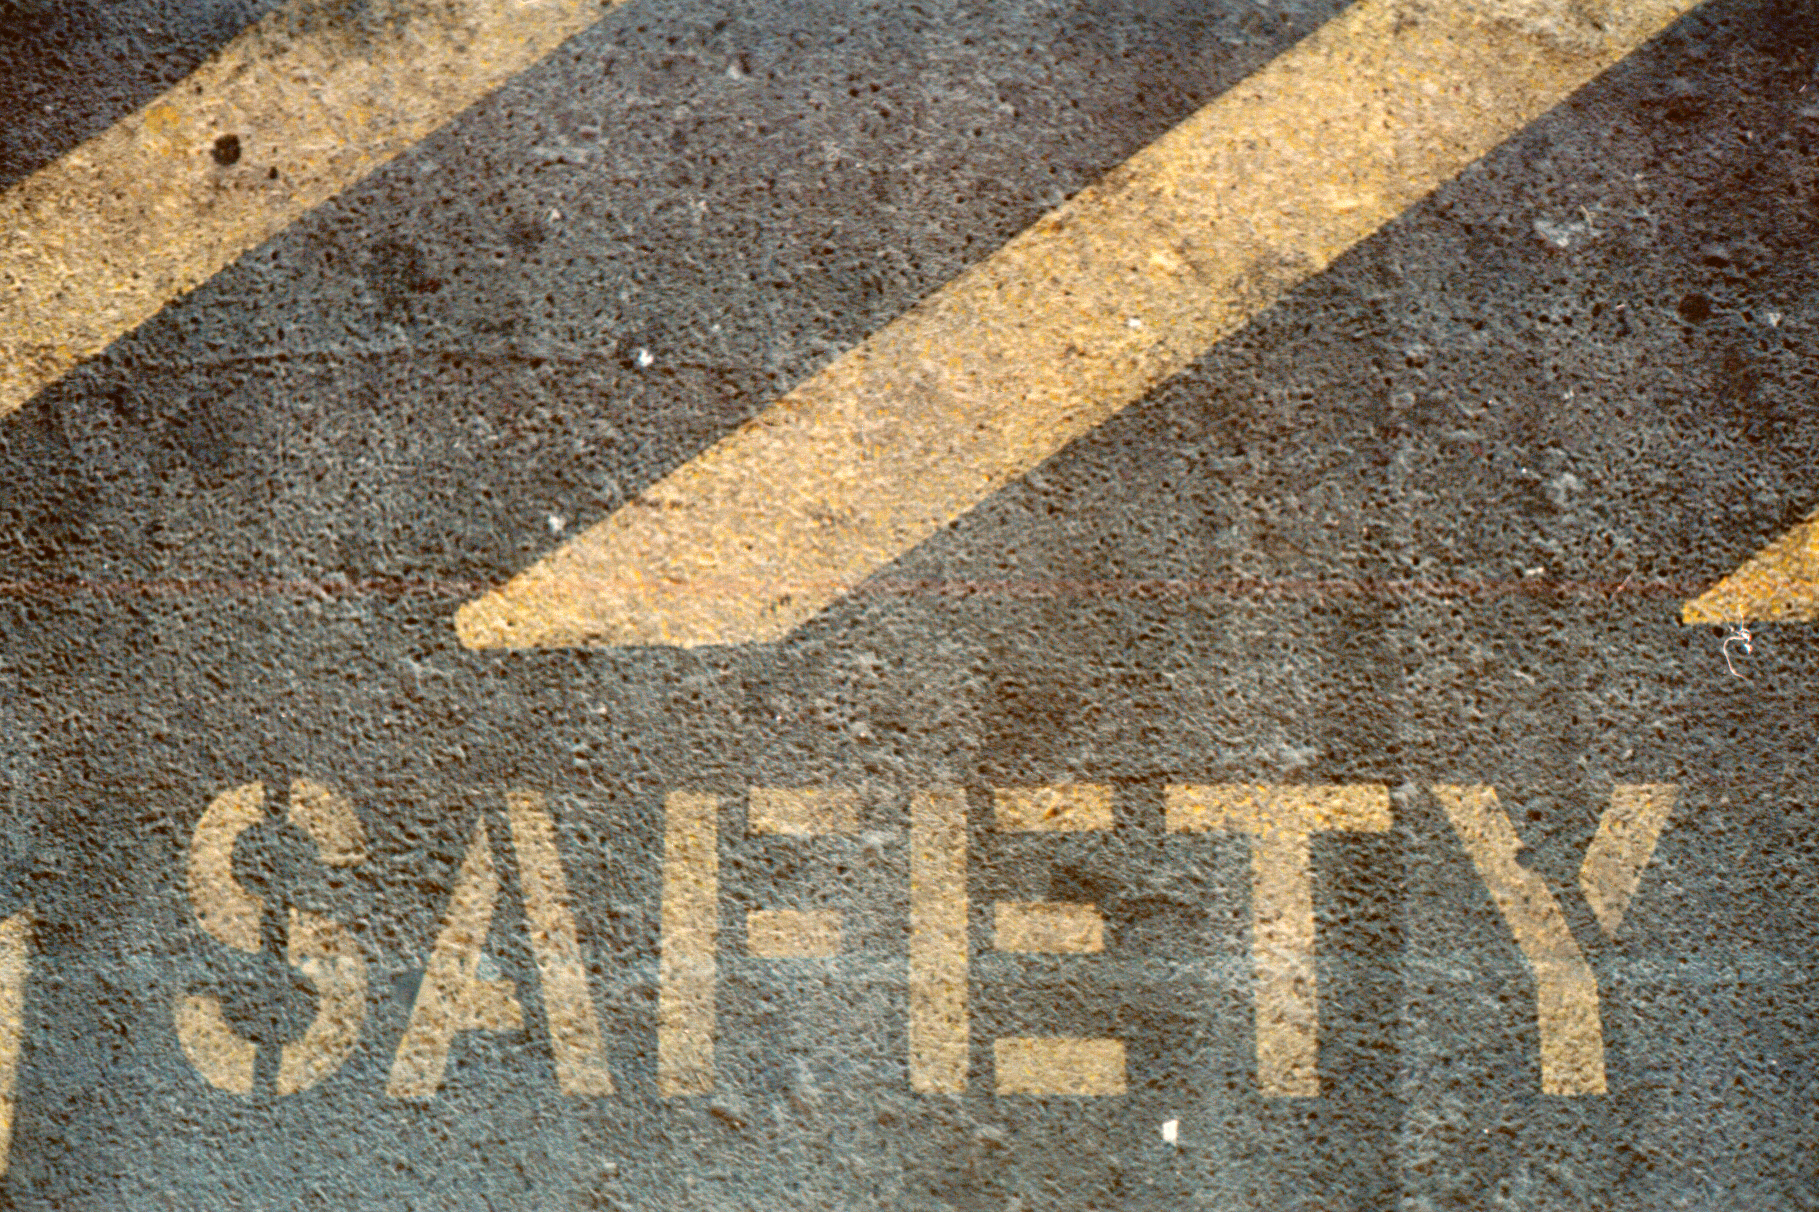 Common Material Handling Mishaps: How to Increase Warehouse Safety